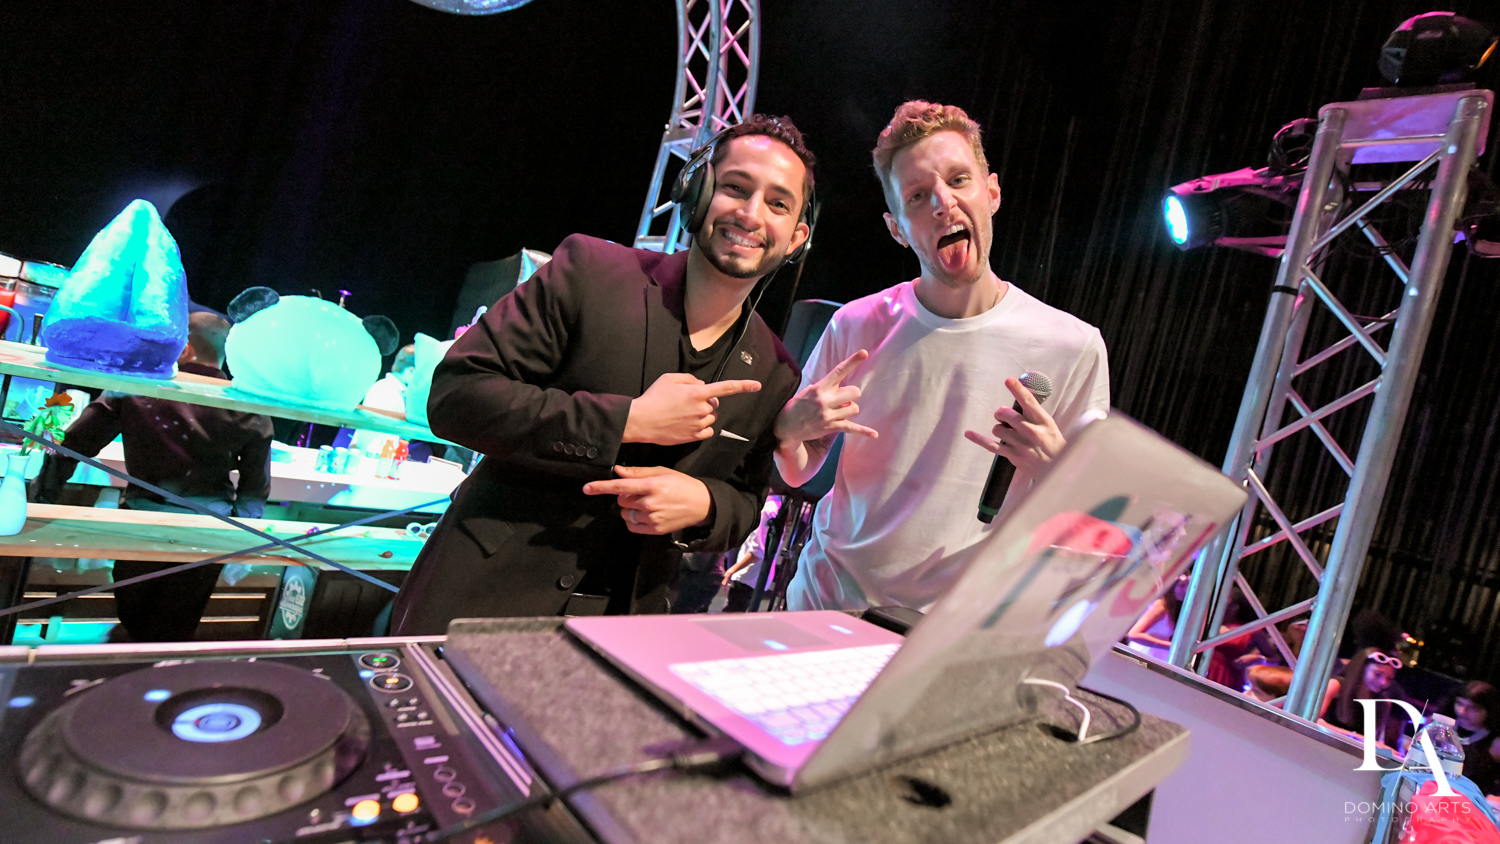 rock with u dj and mc at Music Festival Bat Mitzvah at The Fillmore Miami Beach by Domino Arts Photography